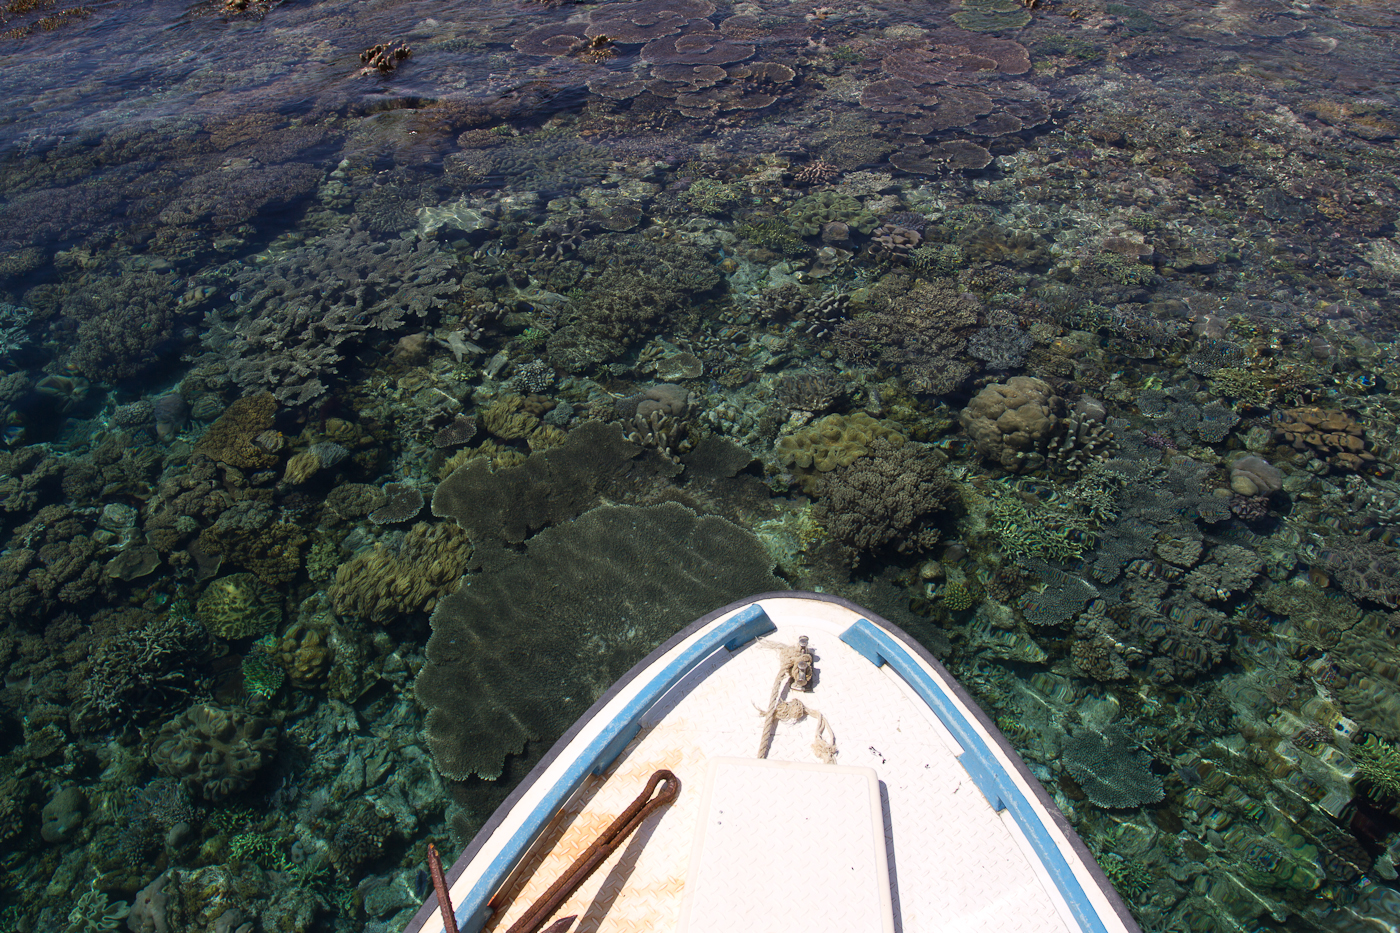 No the boat is not about to crash into the reef. The water is just incredibly clear!